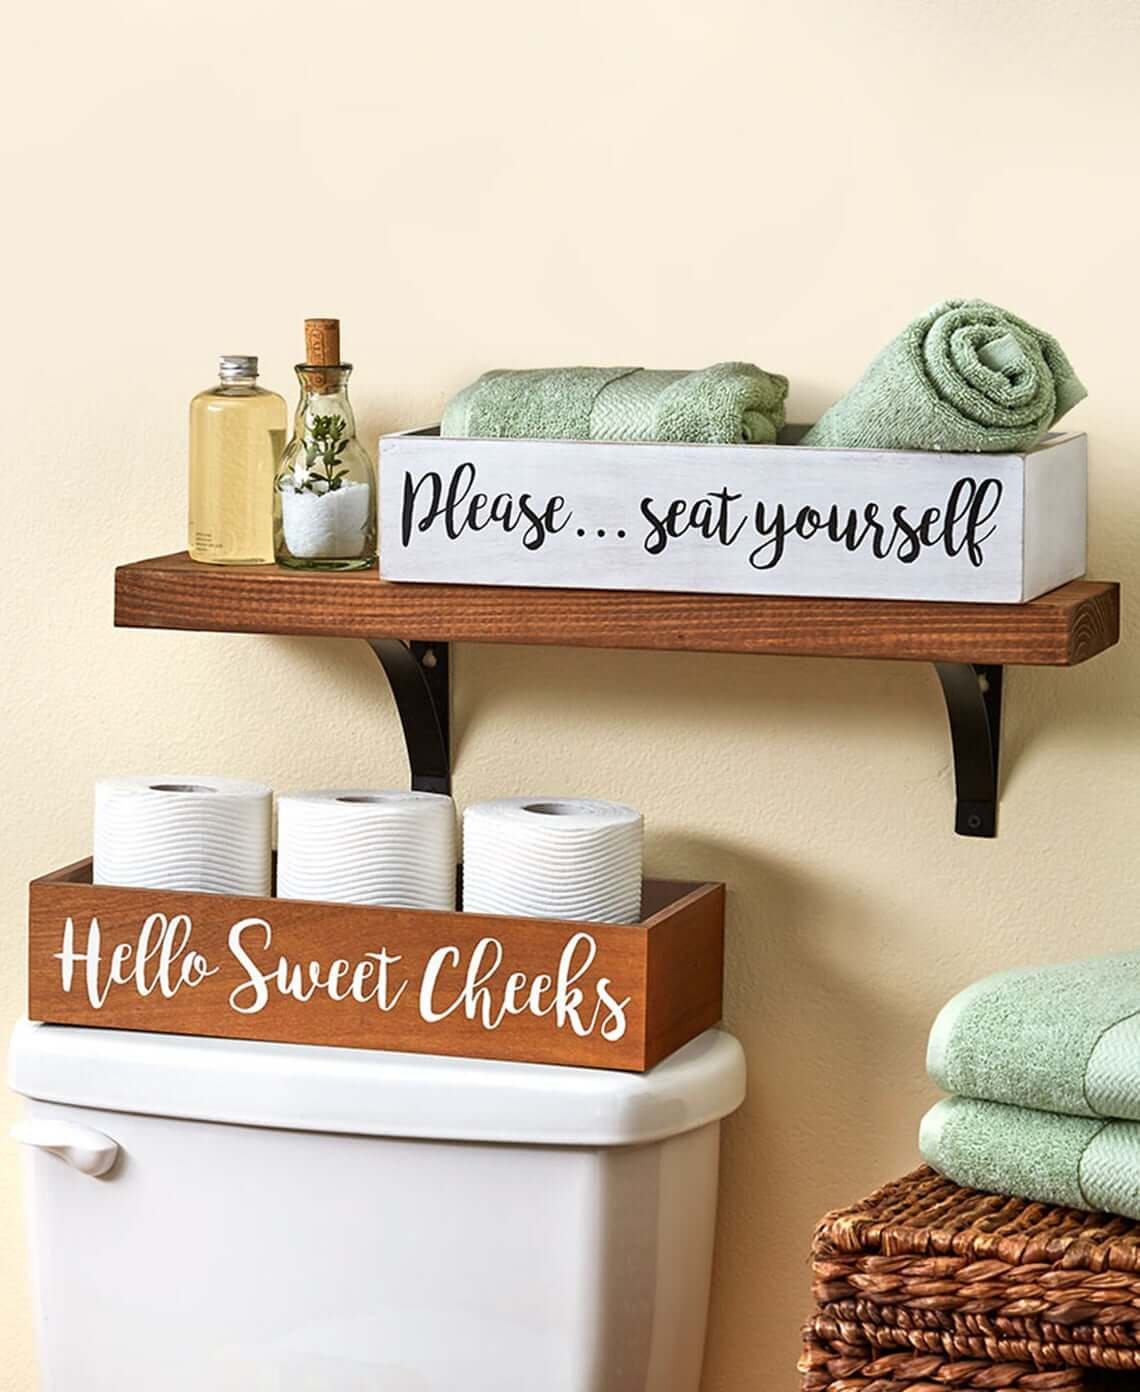 Cheeky Bathroom Humor Organizer Boxes